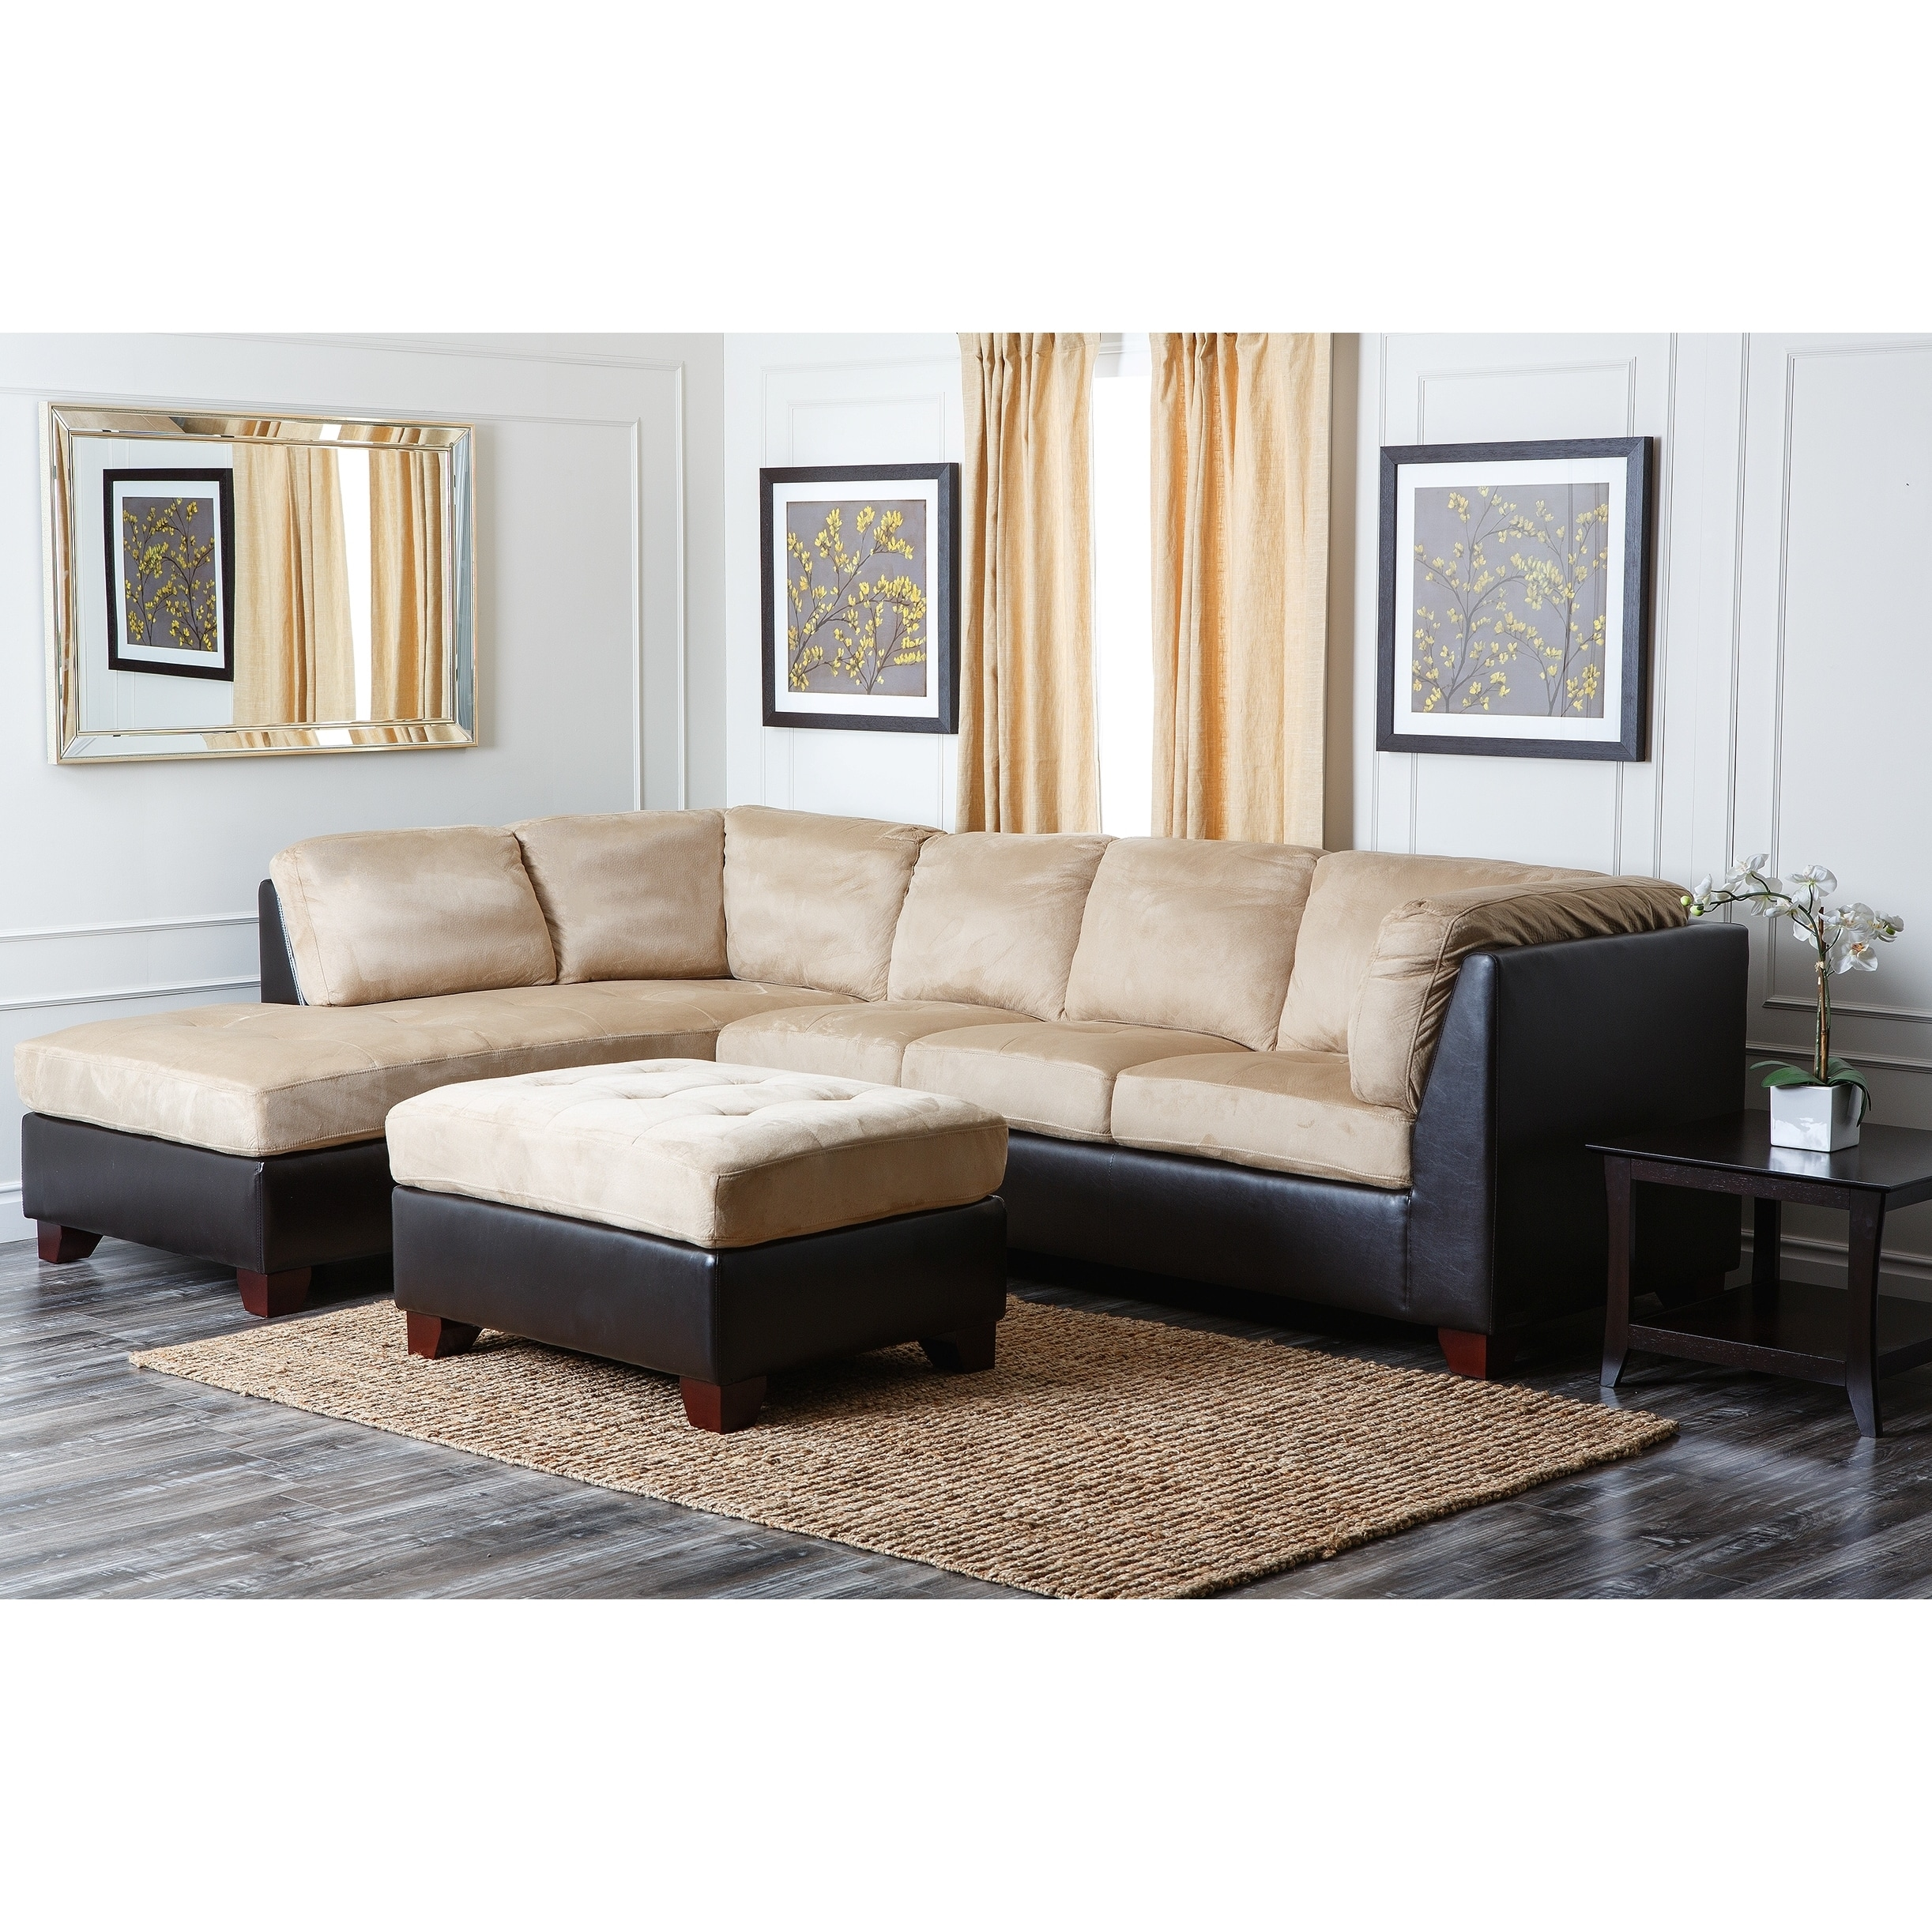 abbyson living charlotte beige sectional sofa and ottoman overstock